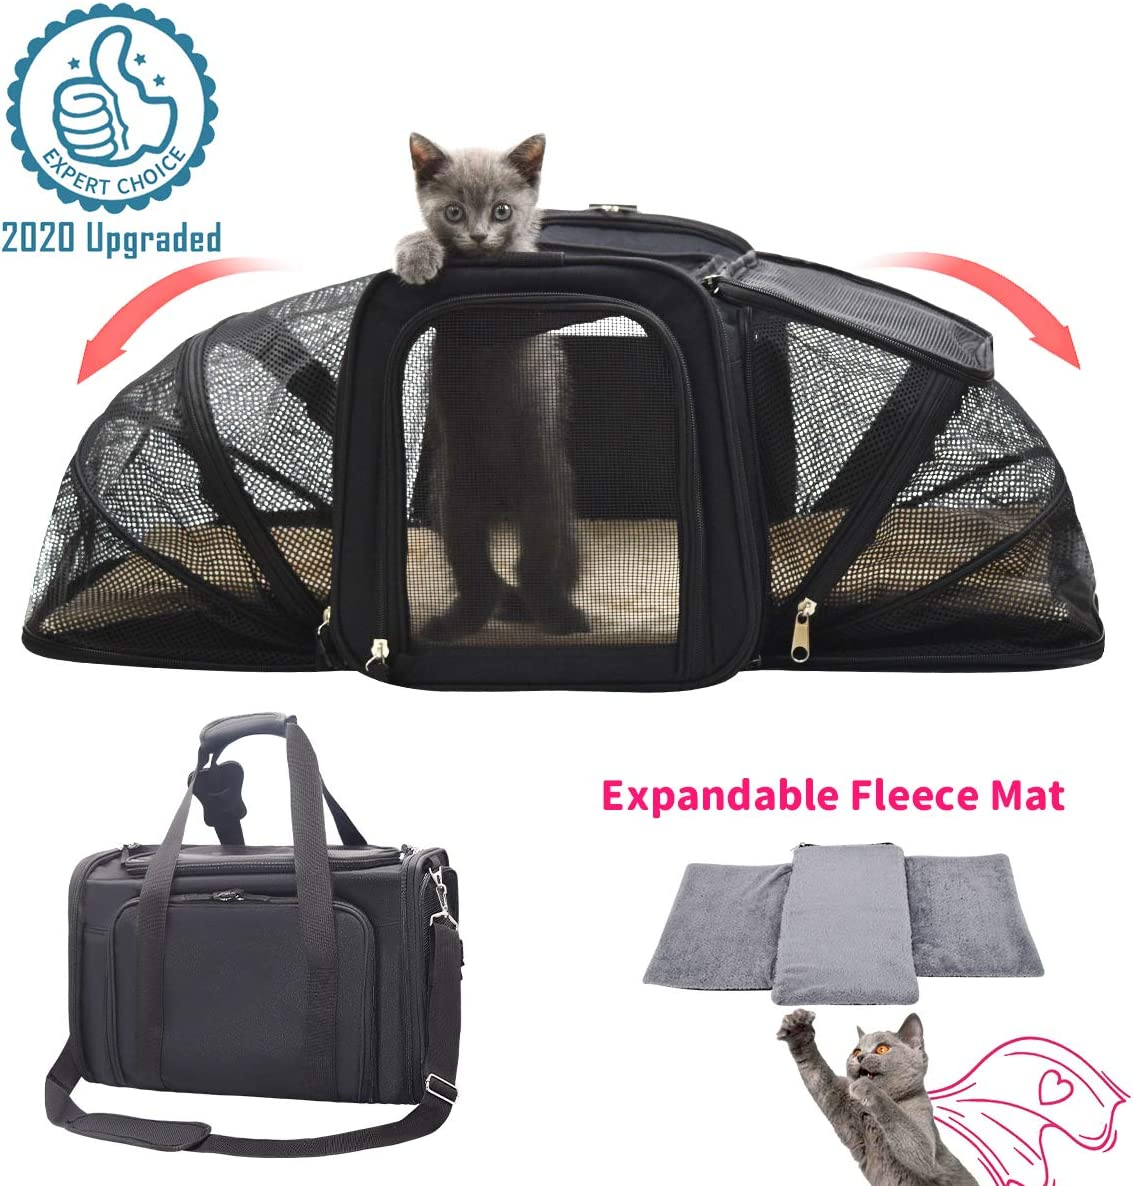 FRUITEAM Soft Sided Pet Carrier Travel Bag,Expandable Cat Travel Carrier Soft-Side,Airline Travel Carrier Bag, Foldable Soft-Sided Cat Carrier 44cmL x 28cmW x 28cmH Pet Travel Bag, Safe and Easy for Rabbit/Small Dogs/Puppy/Kitten, with Removable Fleece Be